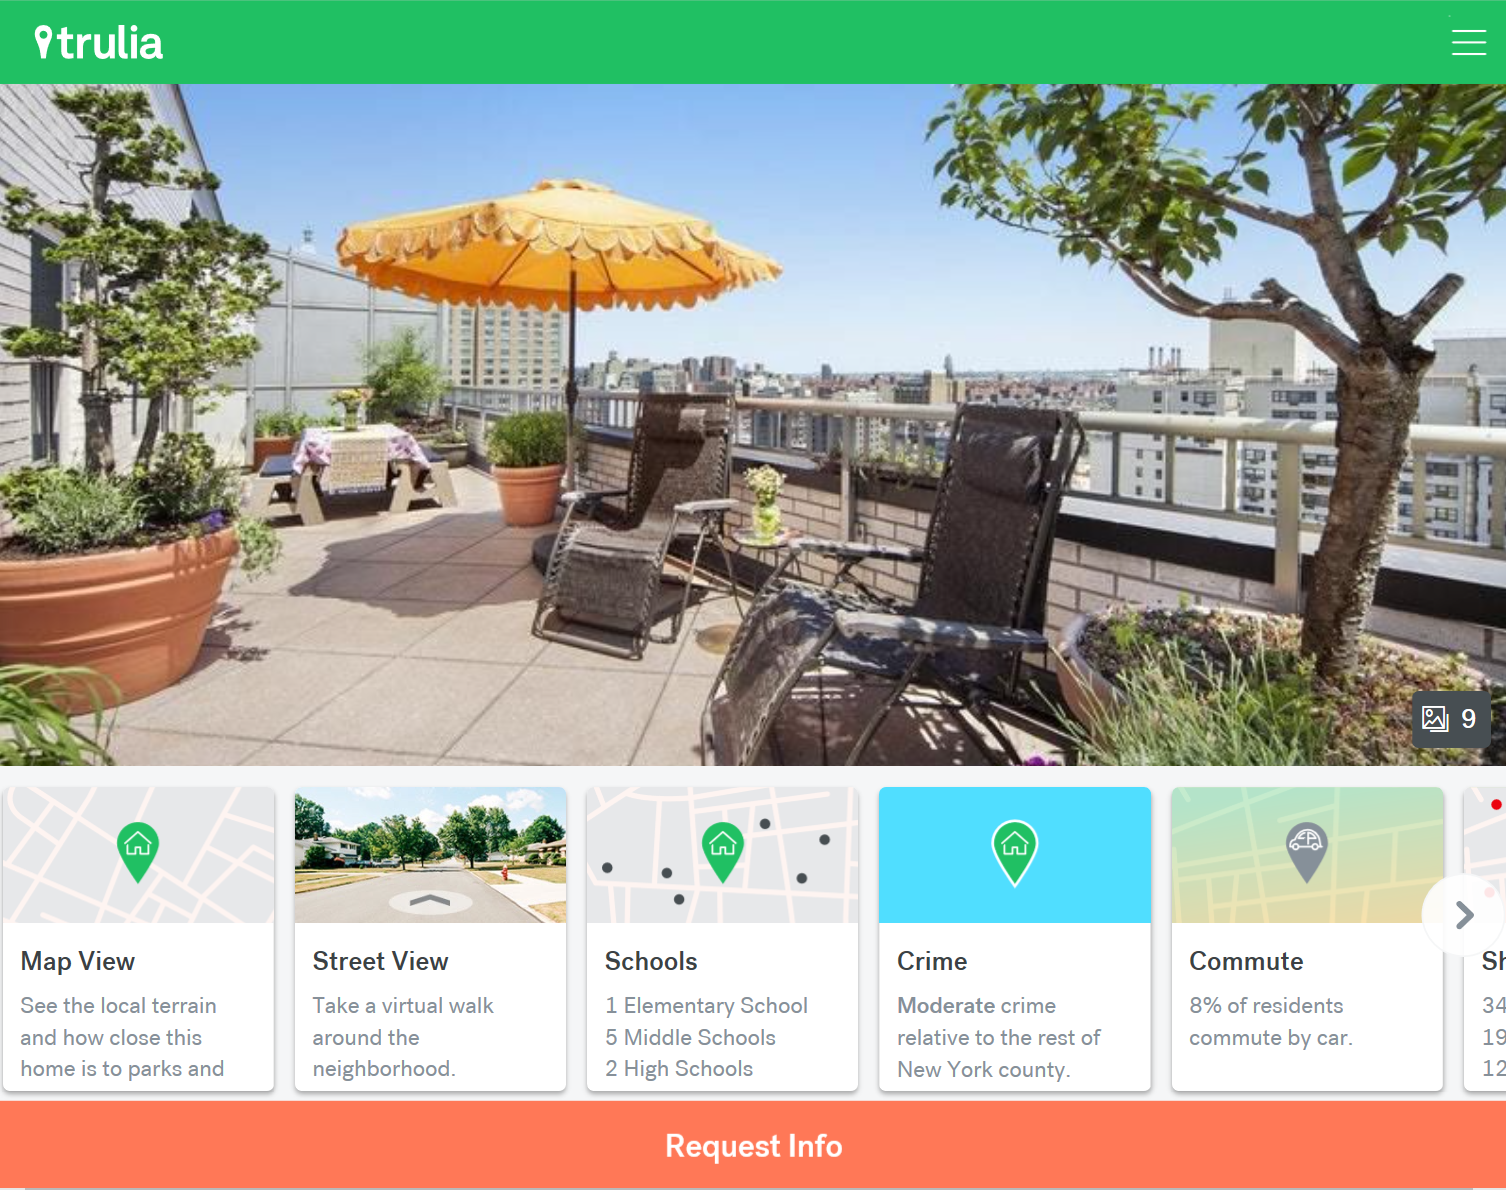 Real Estate Platform Trulia